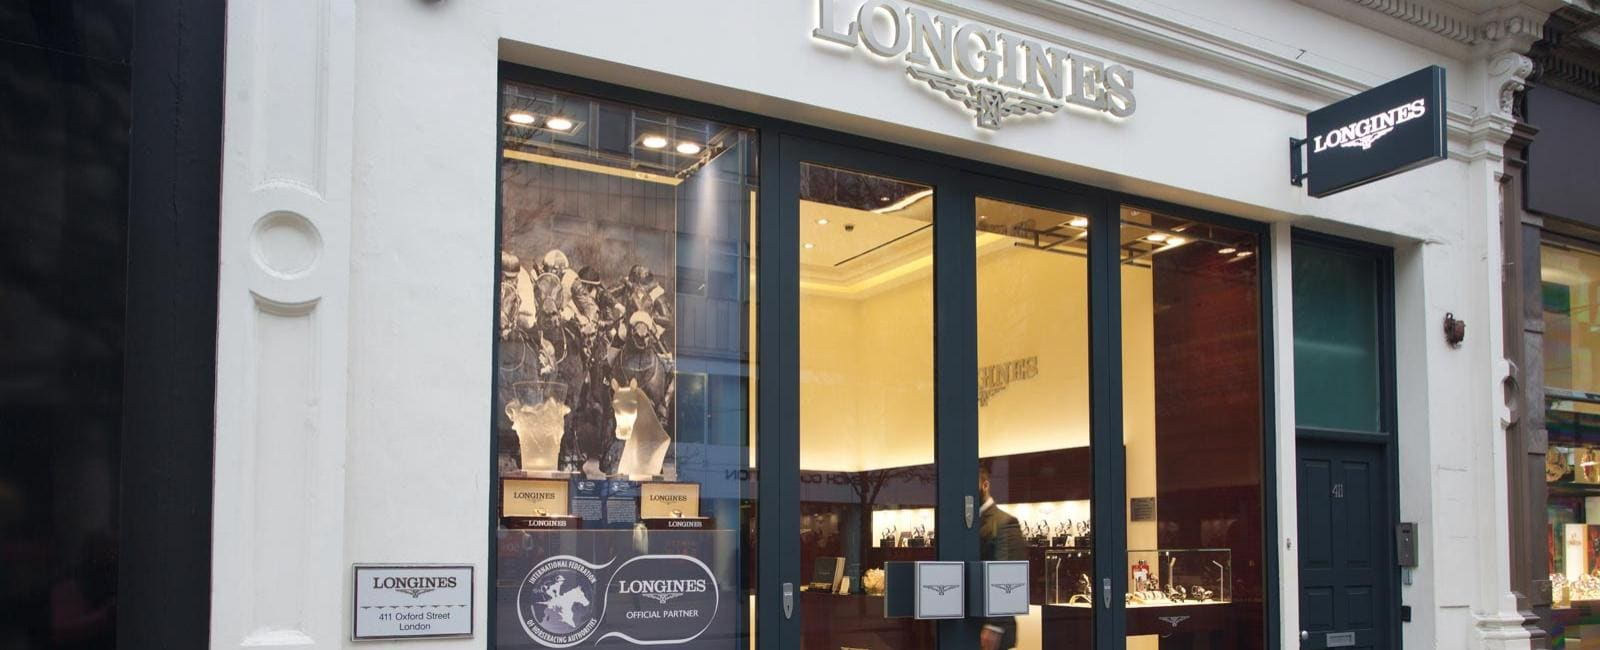 Longines Boutique of London; the International Federation of Horseracing Authorities; the Longines World's Best Racehorse Rankings; the Longines World's Best Racehorse